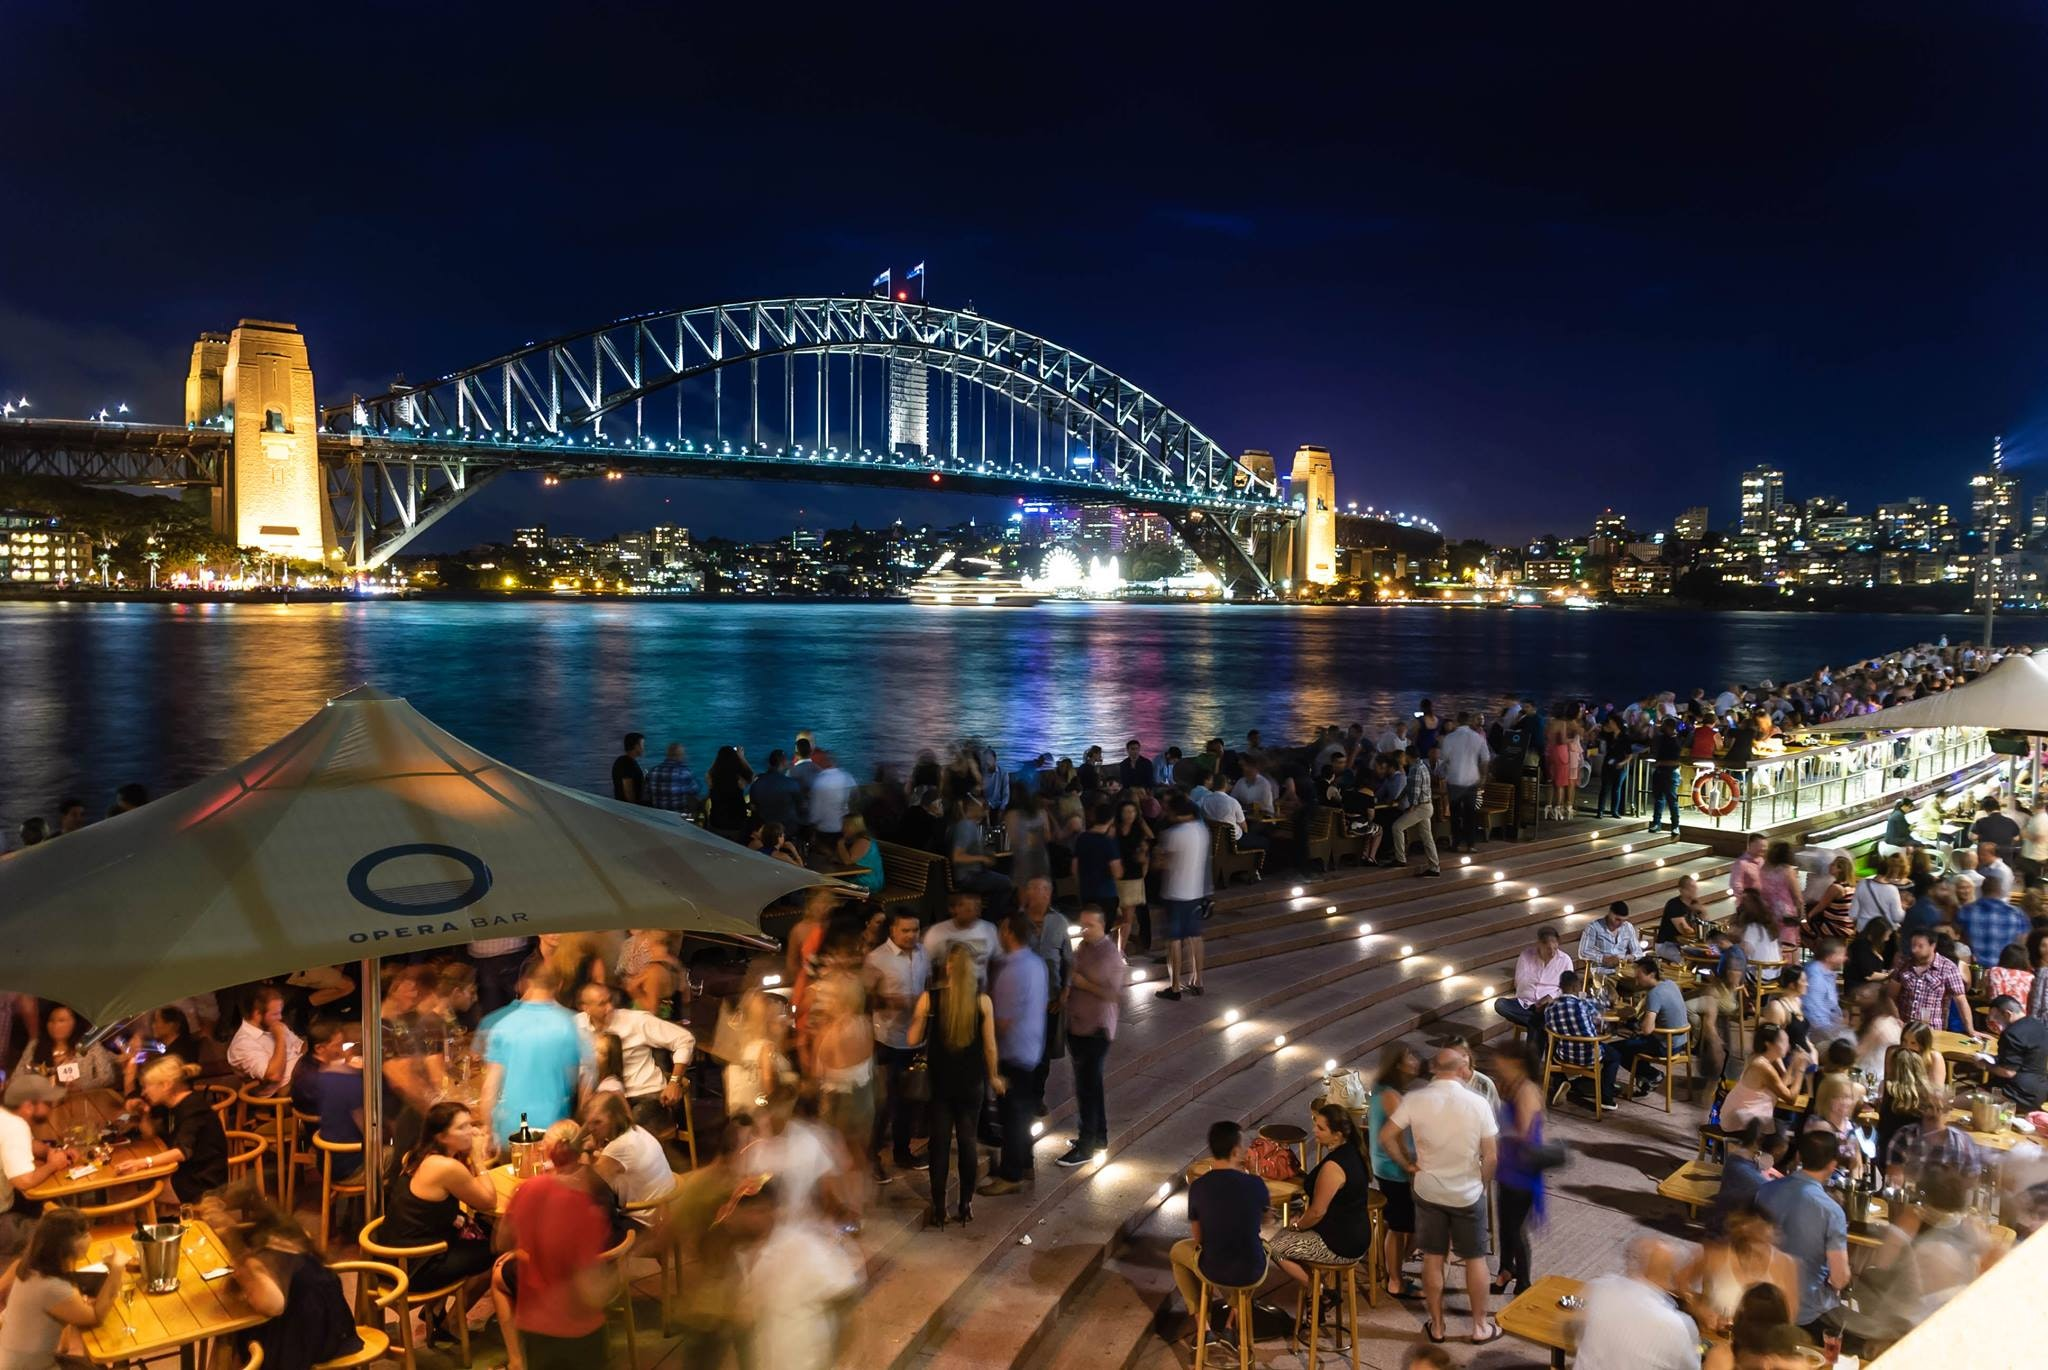 People sitting and standing near bridge during nighttime photo